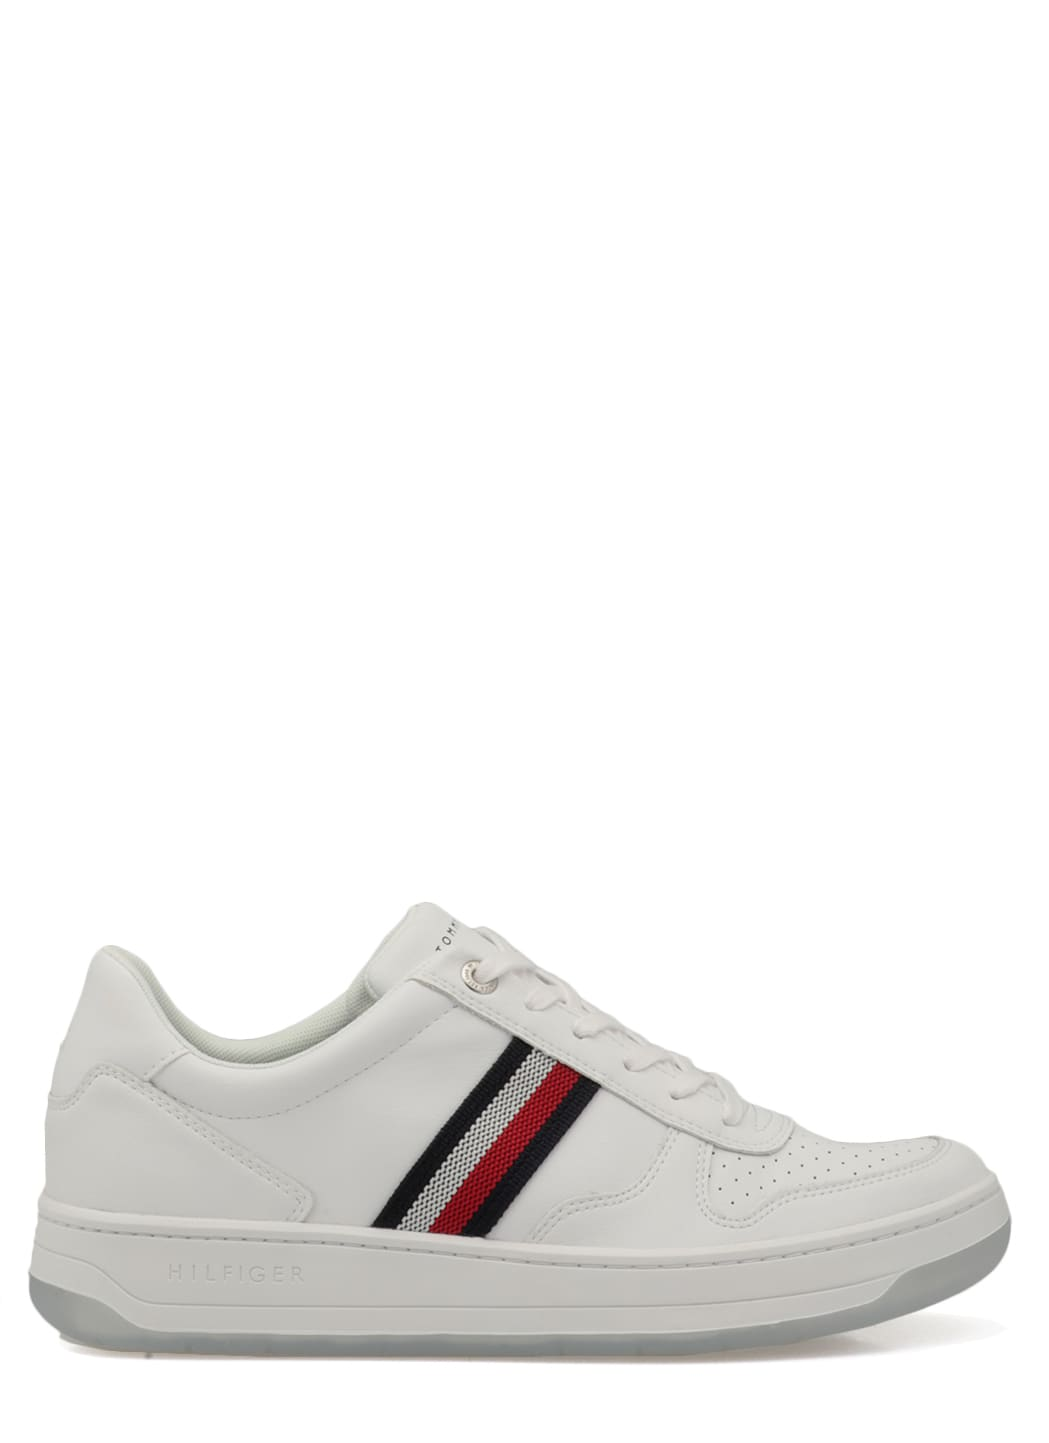 Tommy Hilfiger LEATHER SNEAKERS